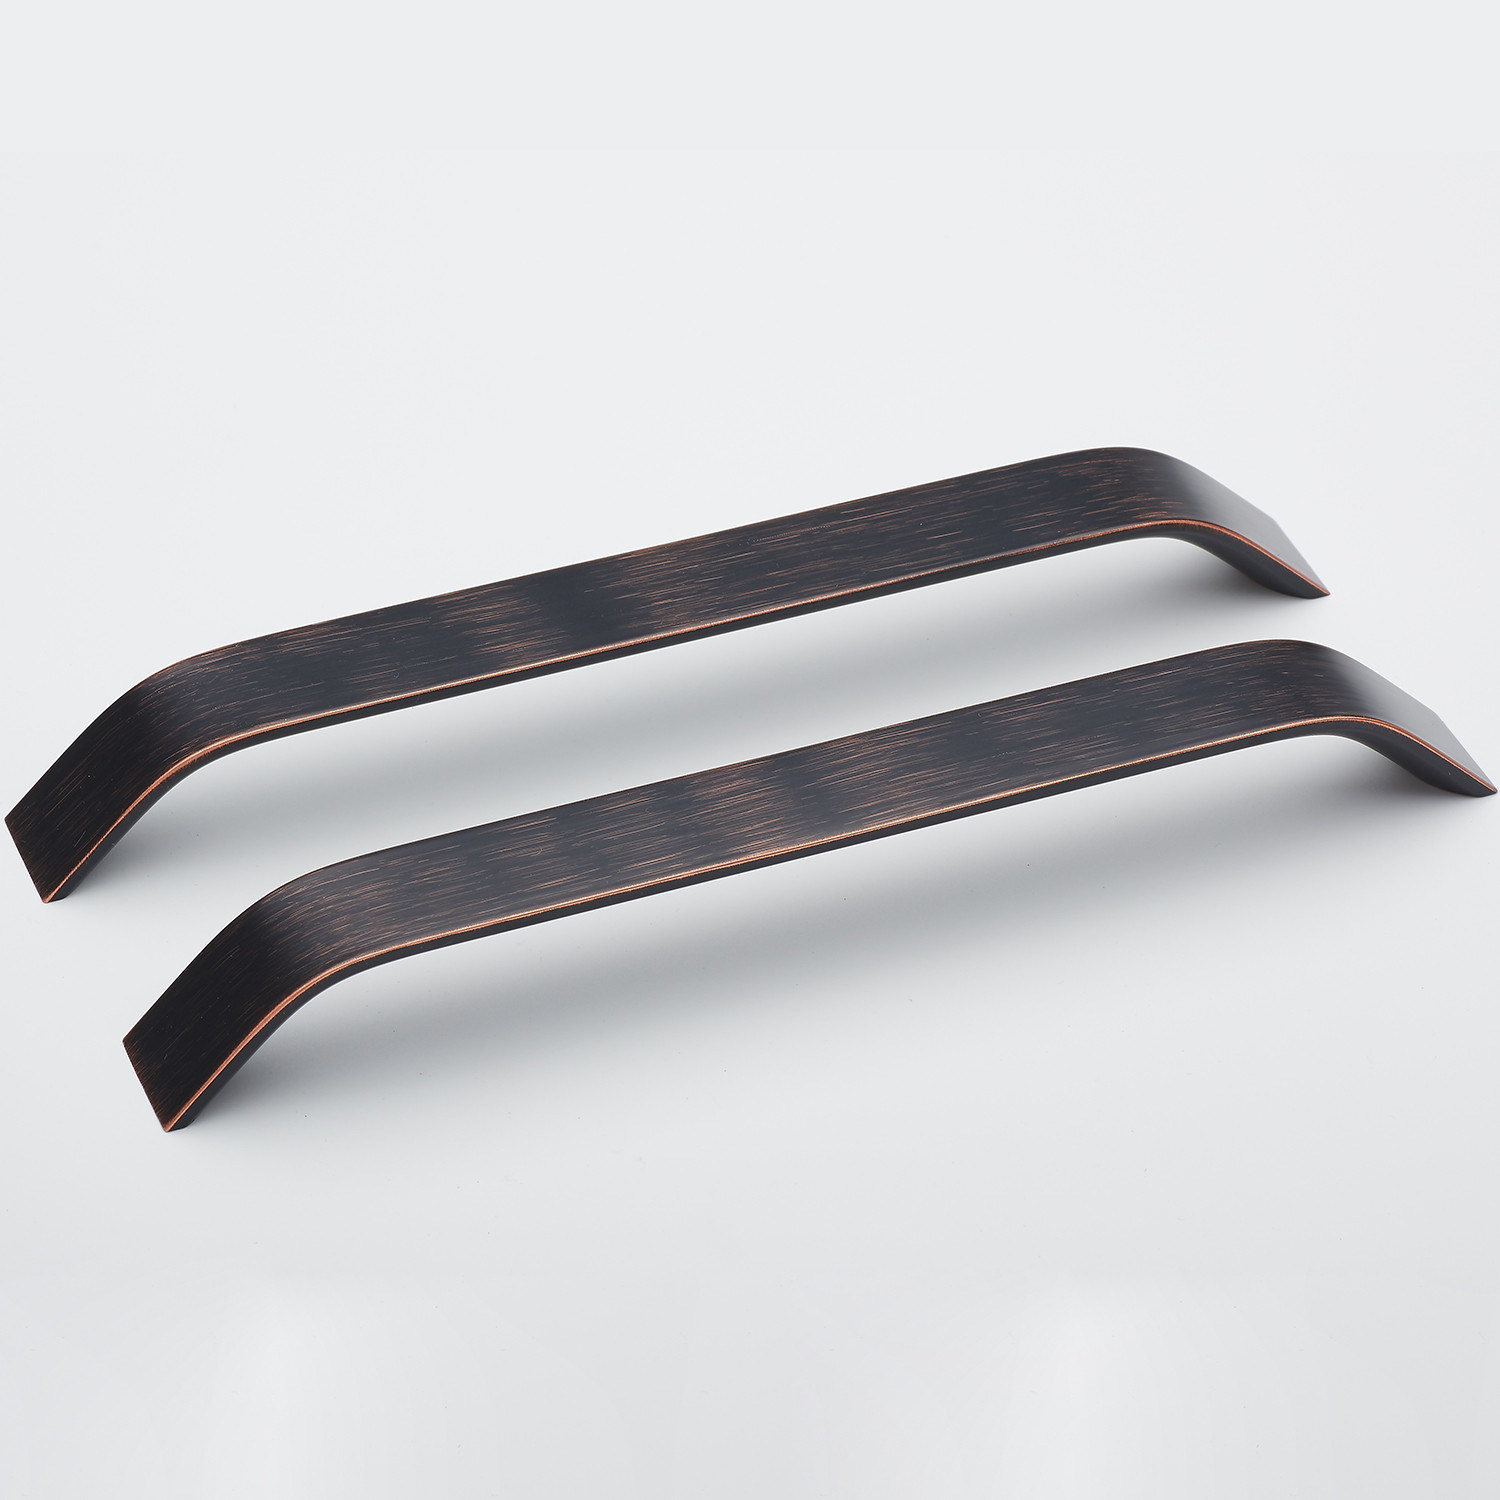 ALUMINIUM PROFILE KITCHEN CABINET DOOR HANDLE DRAWER PULL BLACK OR STAINLESS